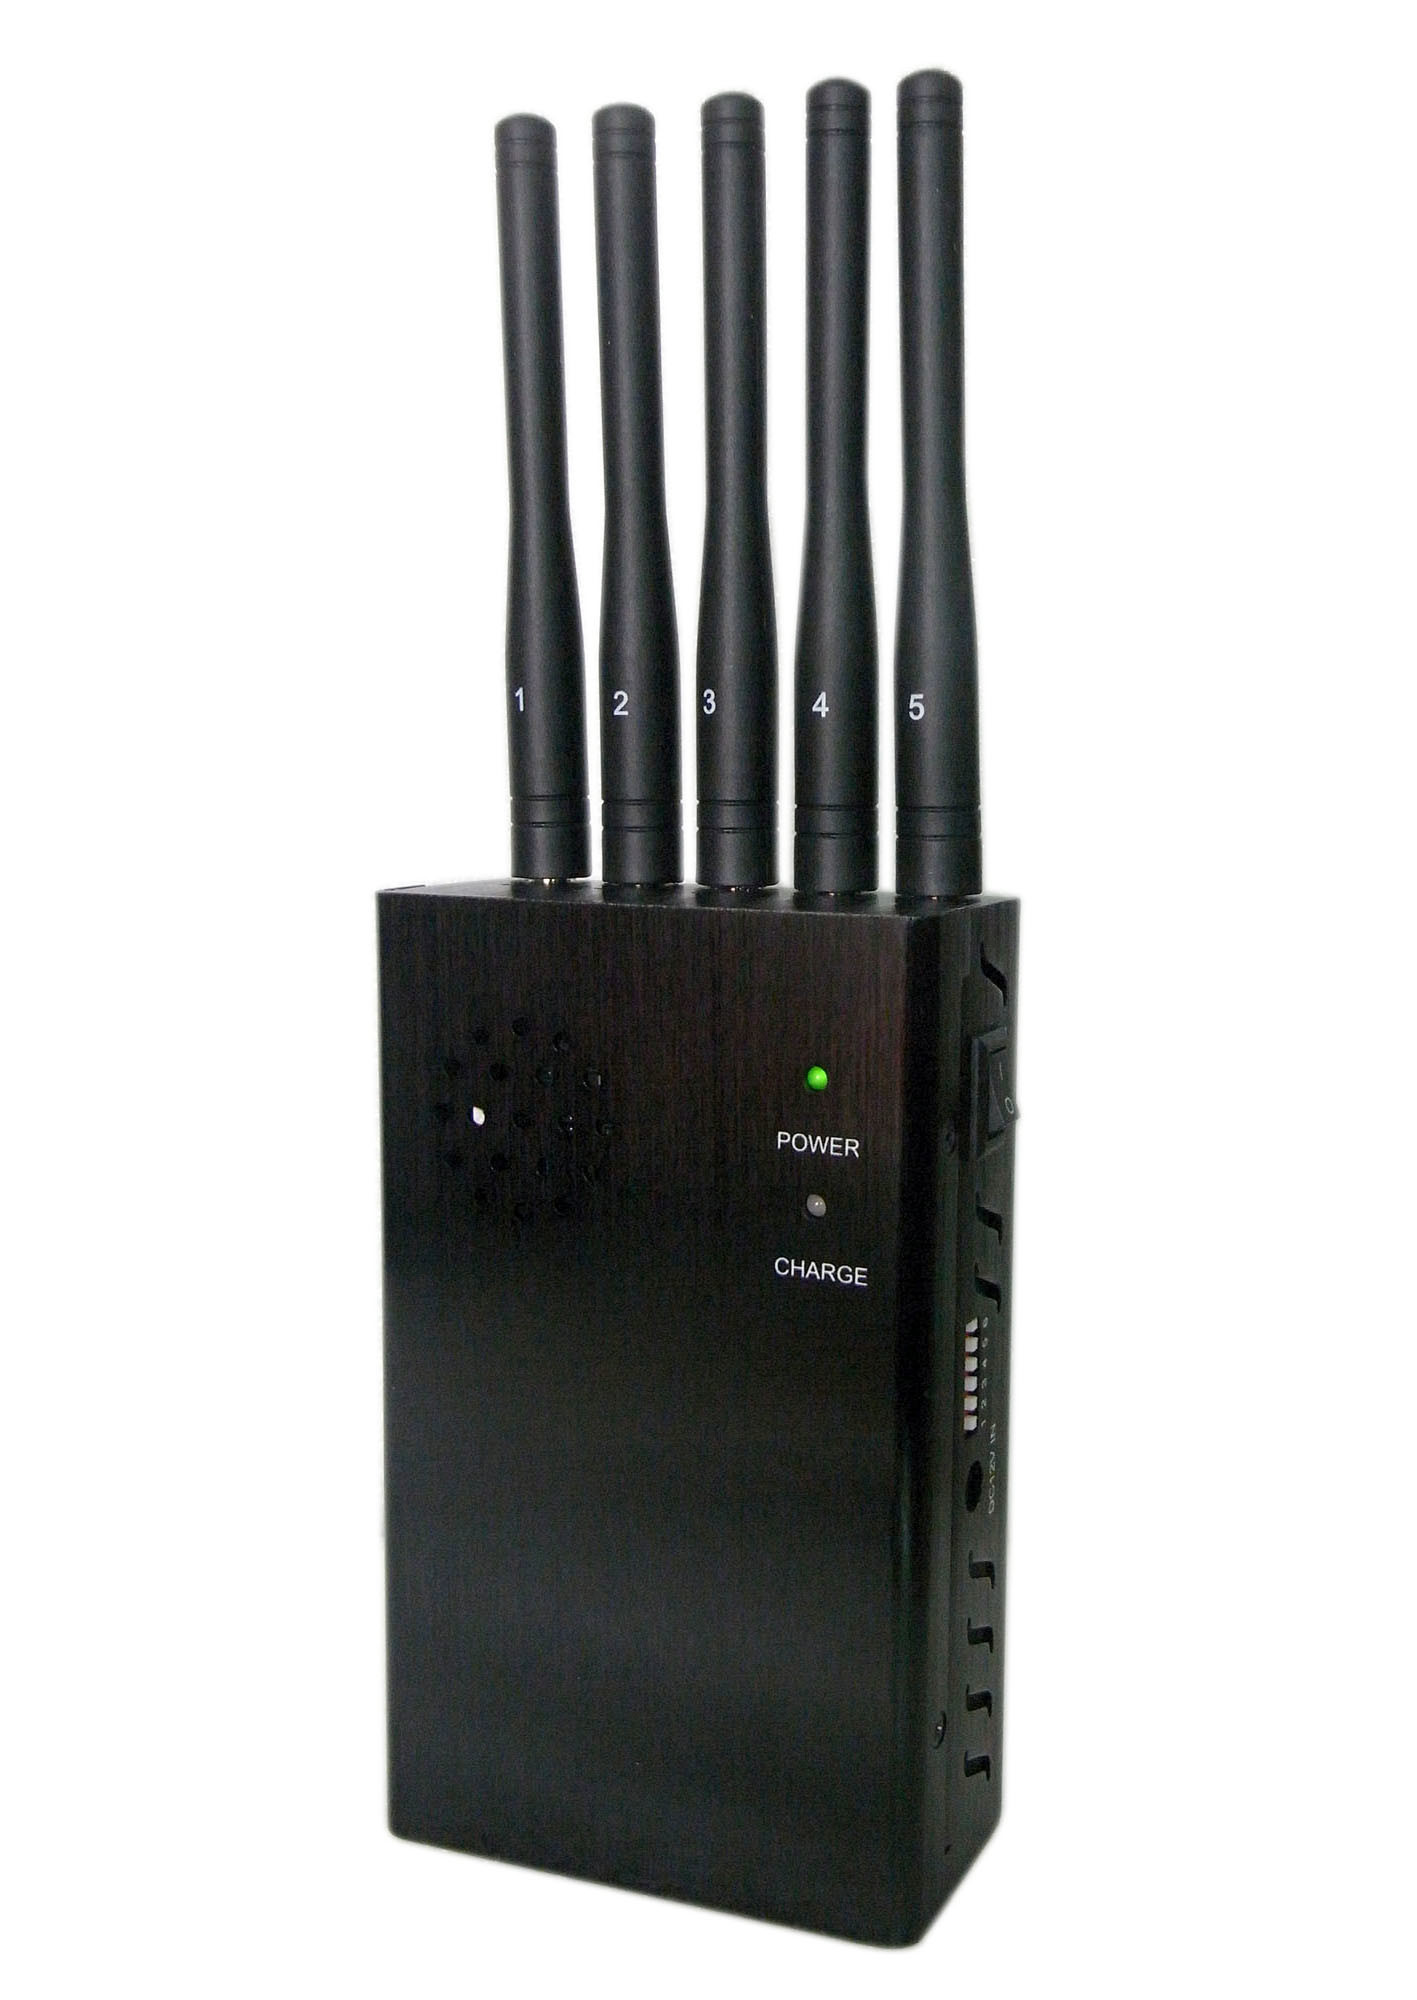 phone jammer india china - China New 5 Powerful Antenna 3G 4glte Wimax Signal Jamers, Cell Phone + GPS + WiFi Jammer 5 Antennas - China 5 Band Signal Blockers, Five Antennas Jammers